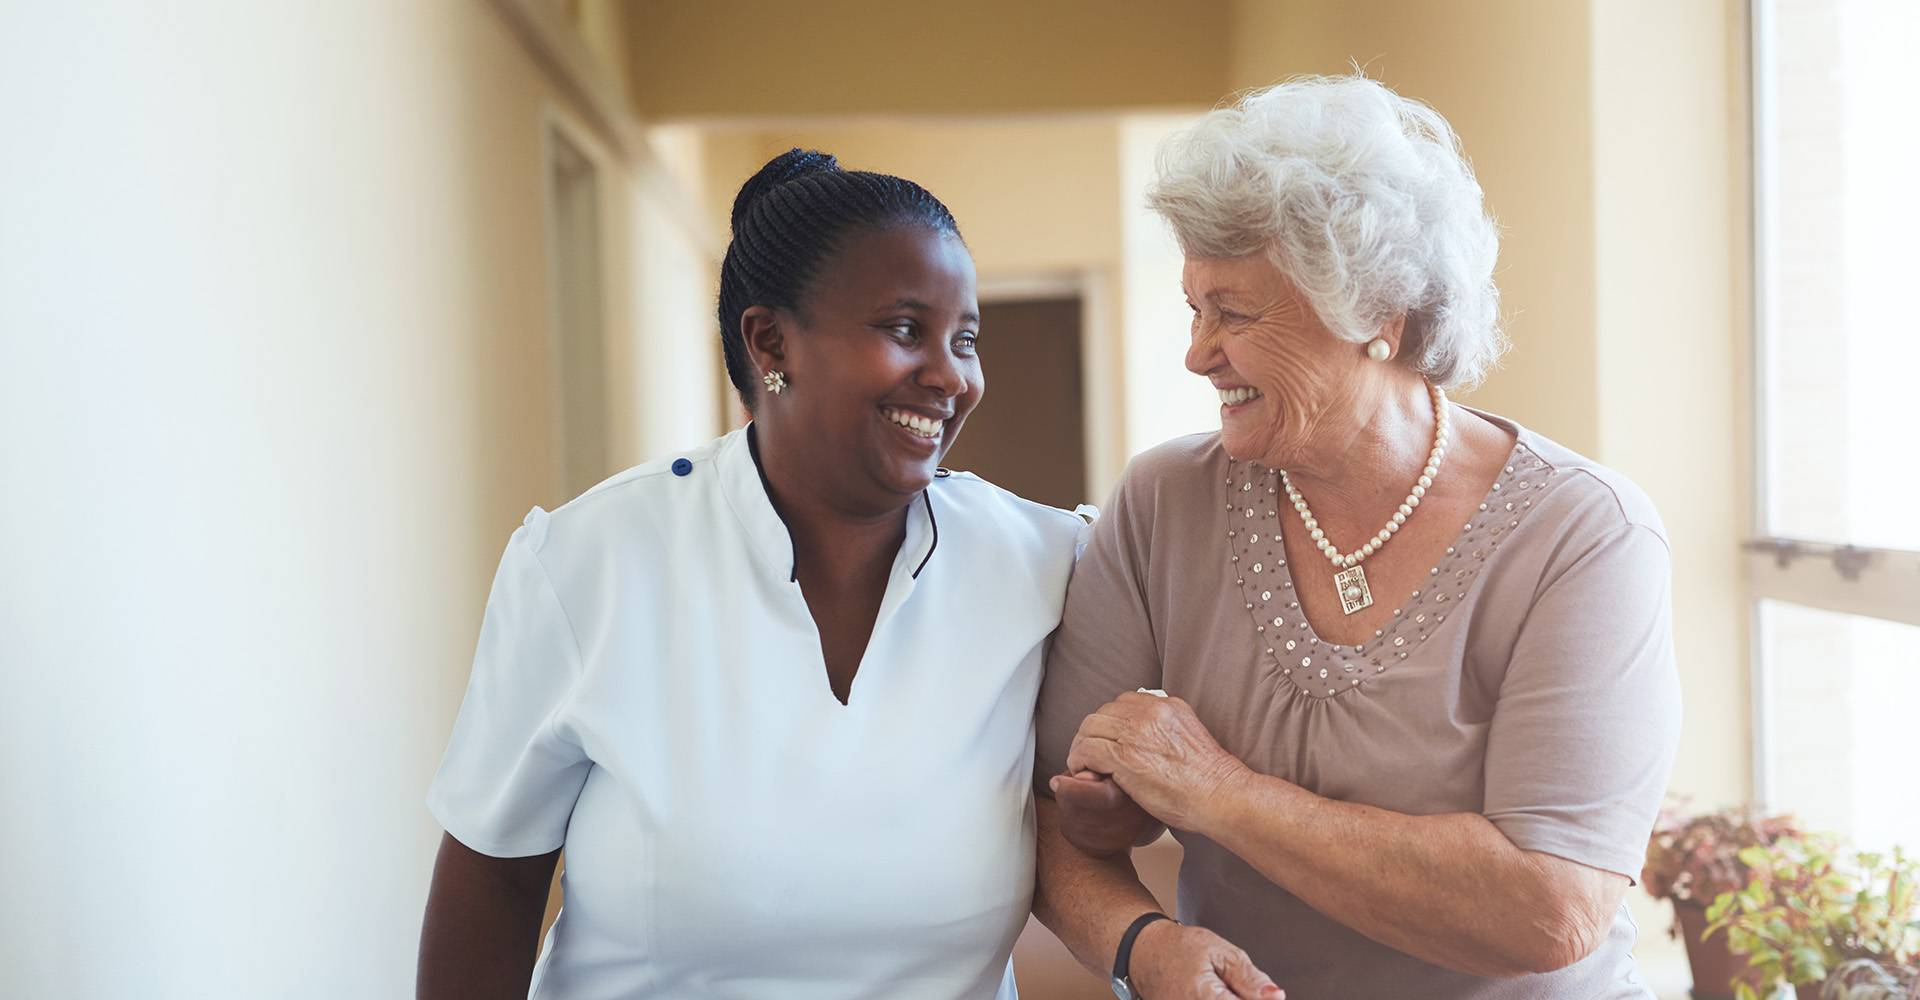 Health-care professional with elderly patient